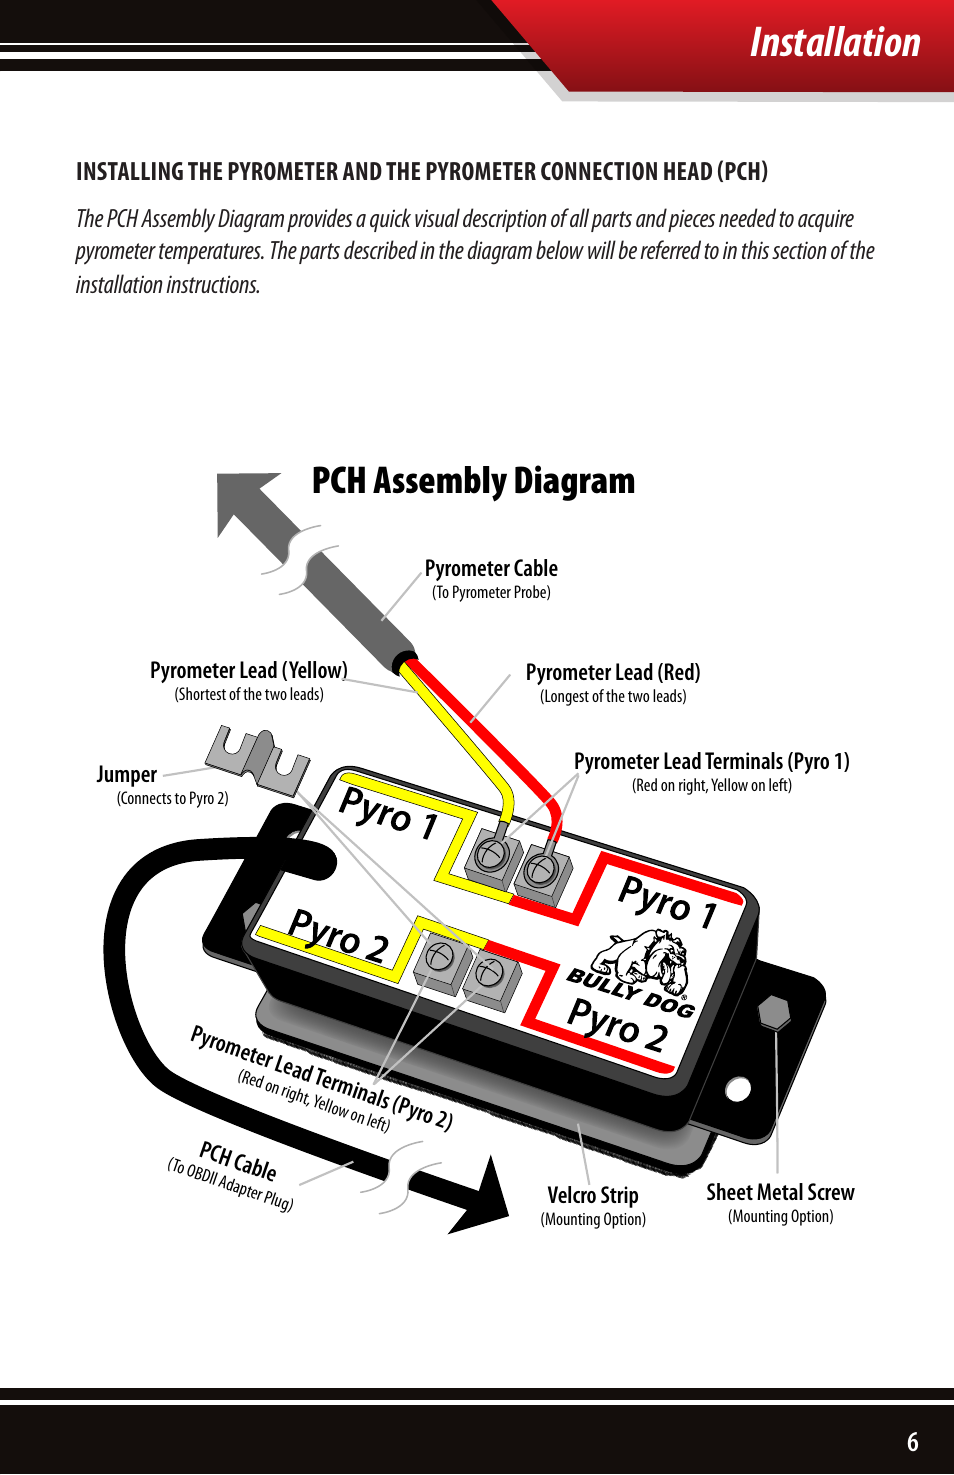 Installation, Pch assembly diagram | Bully Dog 40390 PCH with Pyrometer  Lead User Manual | Page 7 / 16